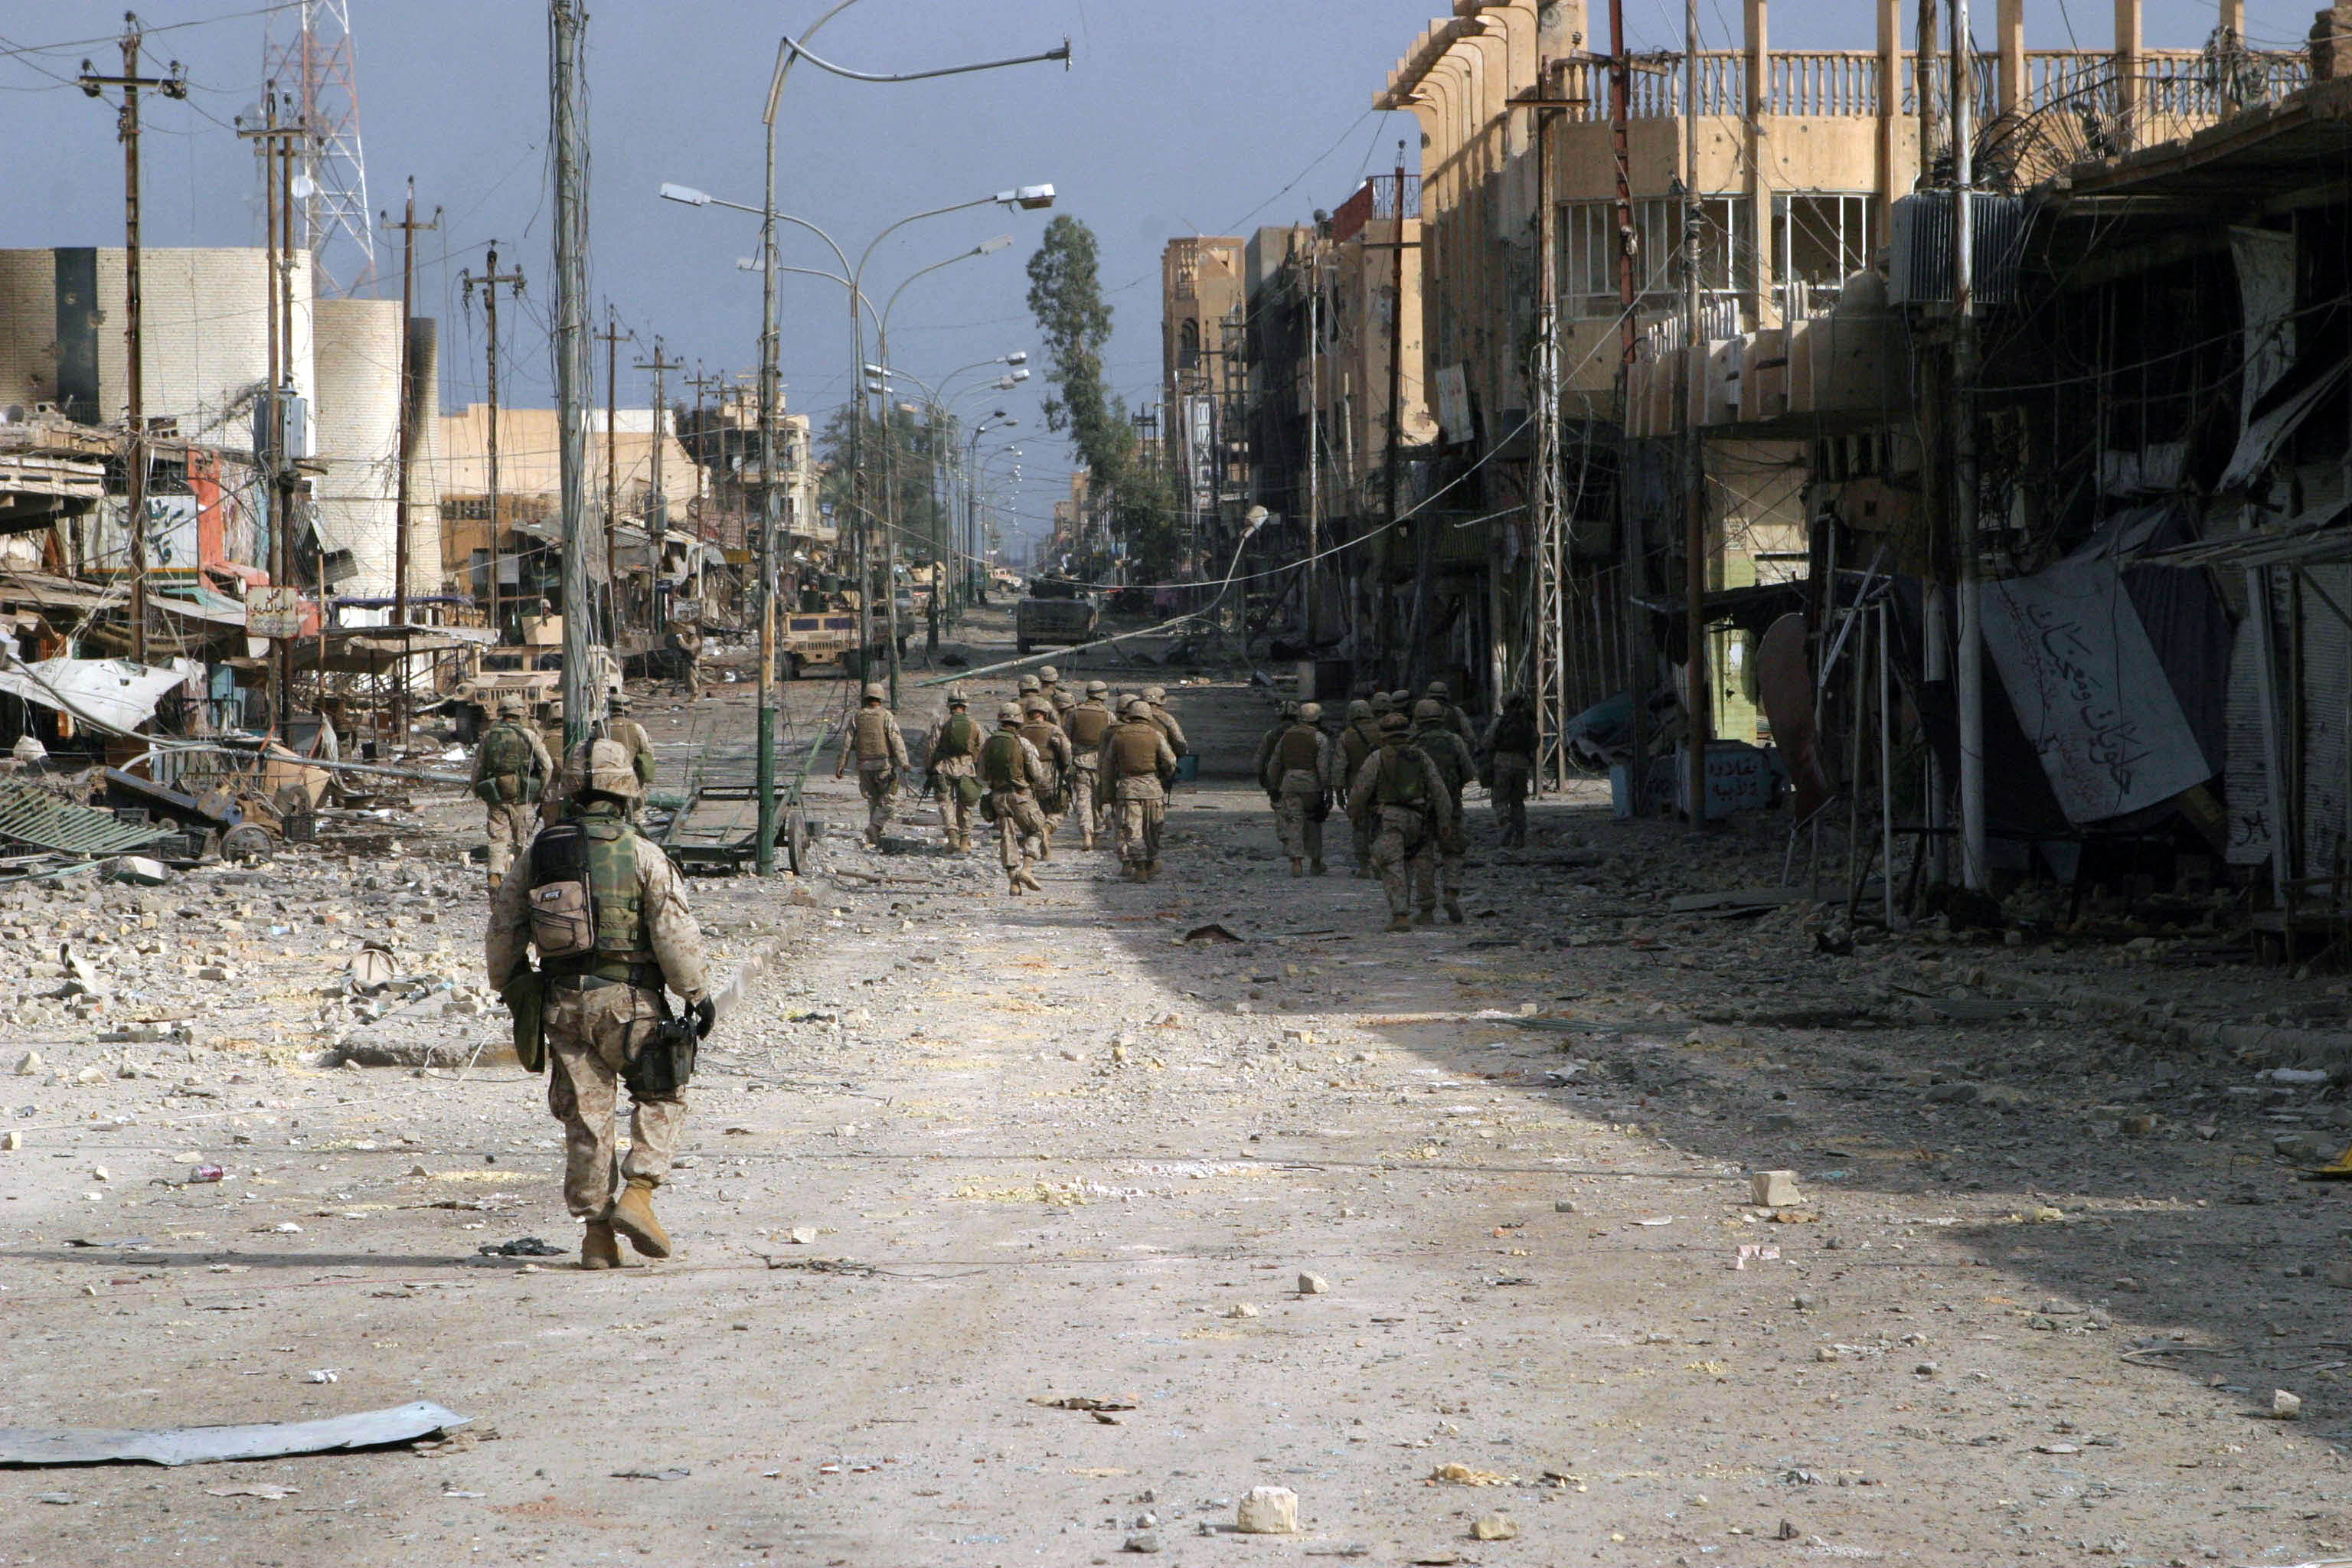 https://upload.wikimedia.org/wikipedia/commons/3/30/US_Navy_041114-M-8205V-005_Iraqi_Special_Forces_Soldiers_assigned_to_the_1st_Marines,_patrol_south_clearing_every_house_on_their_way_through_Fallujah,_Iraq,_during_Operation_Al_Fajr_(New_Dawn).jpg